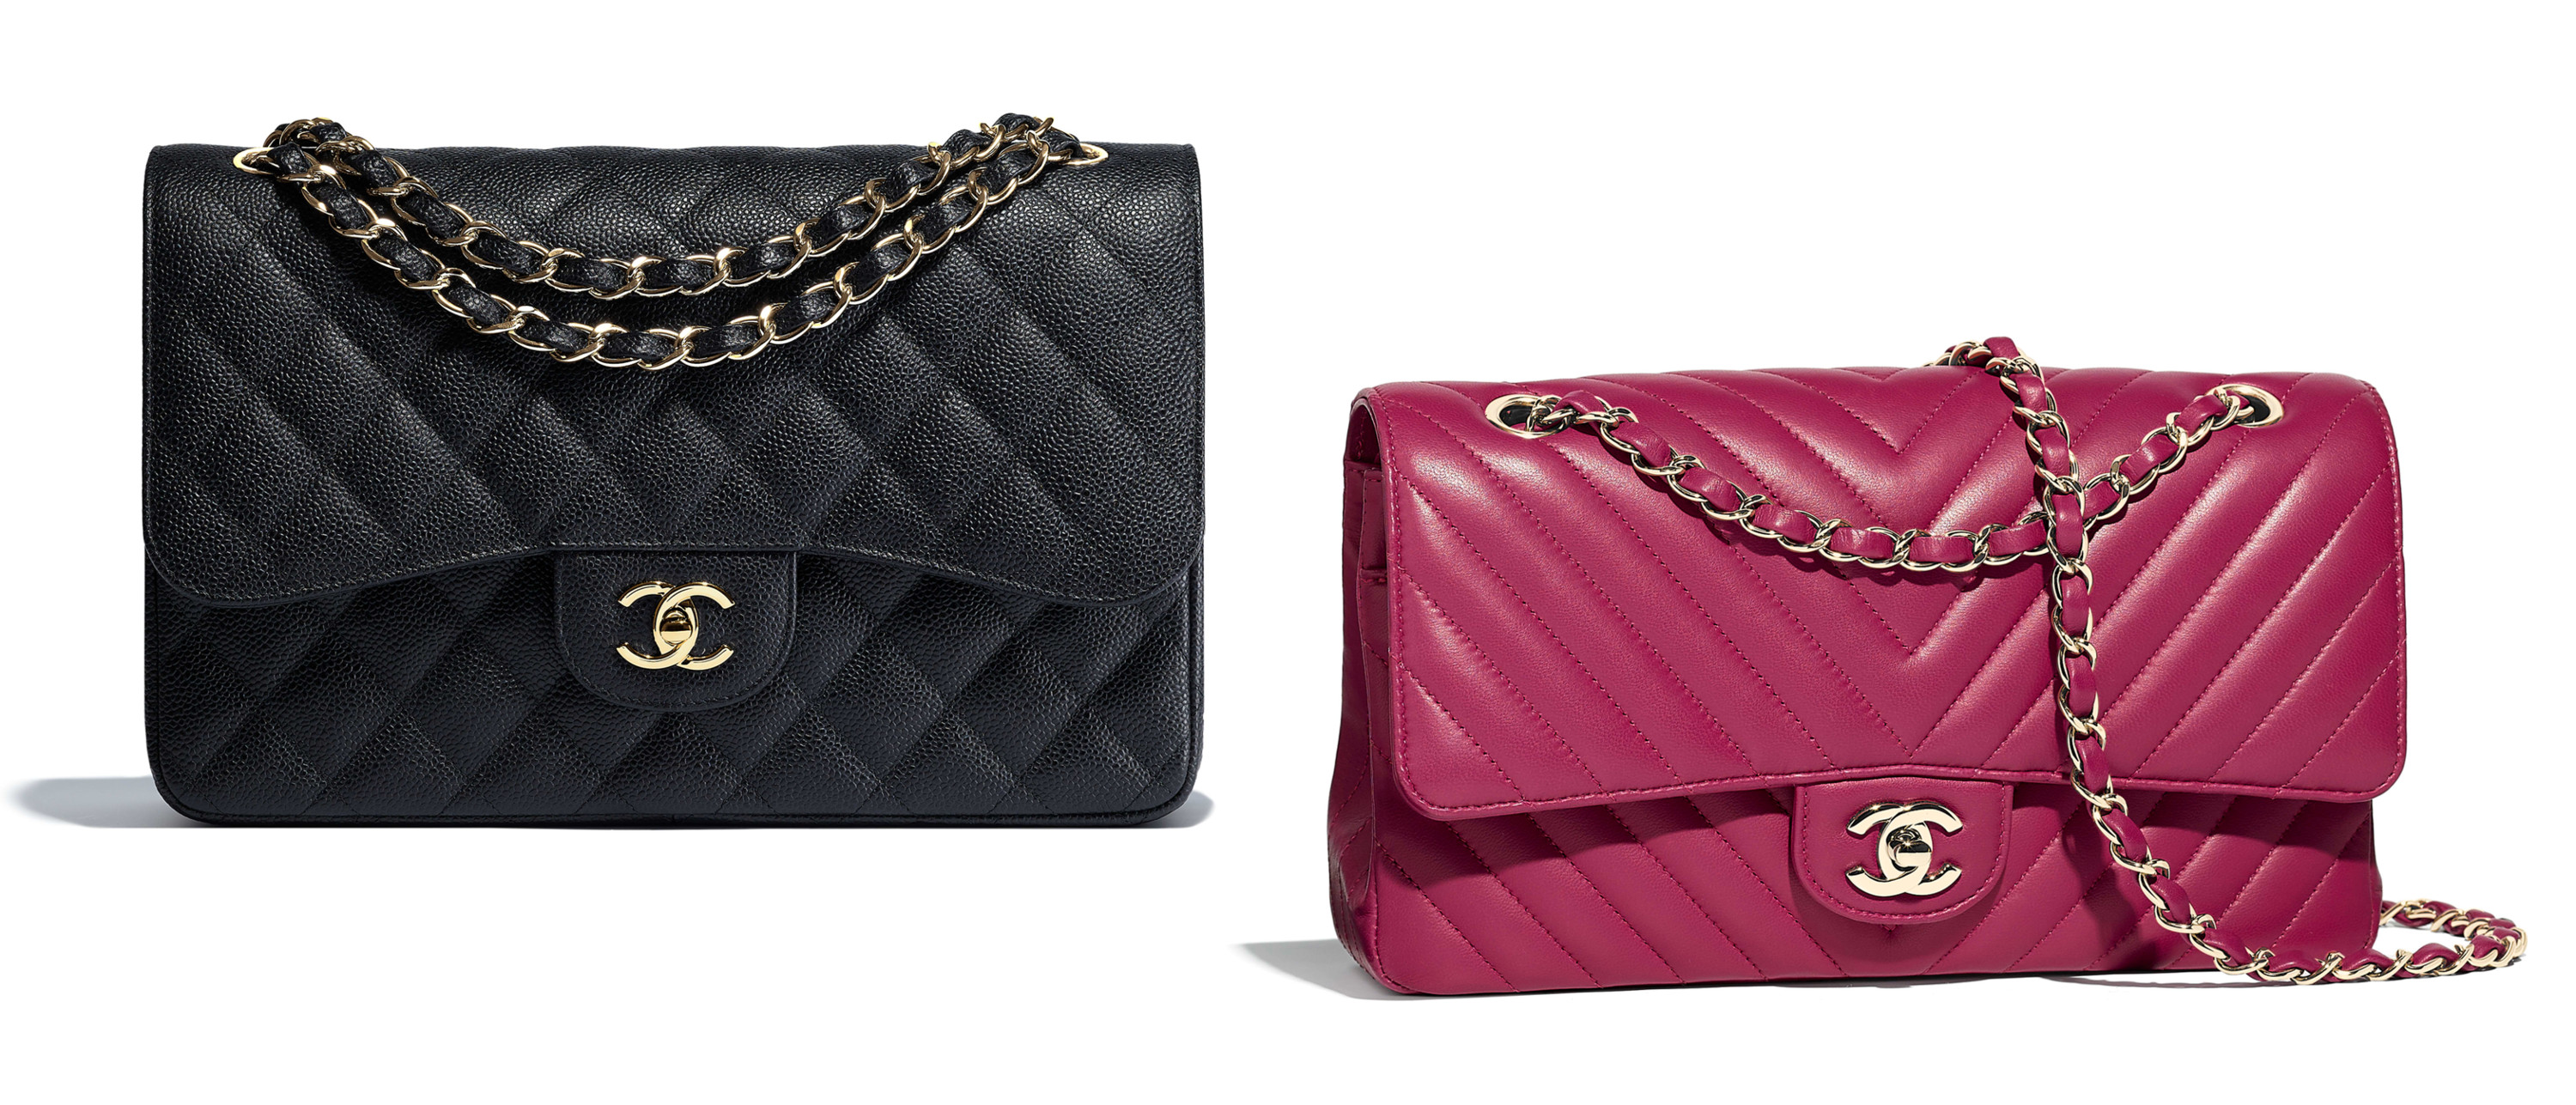 Get Your Chanel Bag On - Classic Flaps and Boy Bag Price Increase ... 3c3ad6450